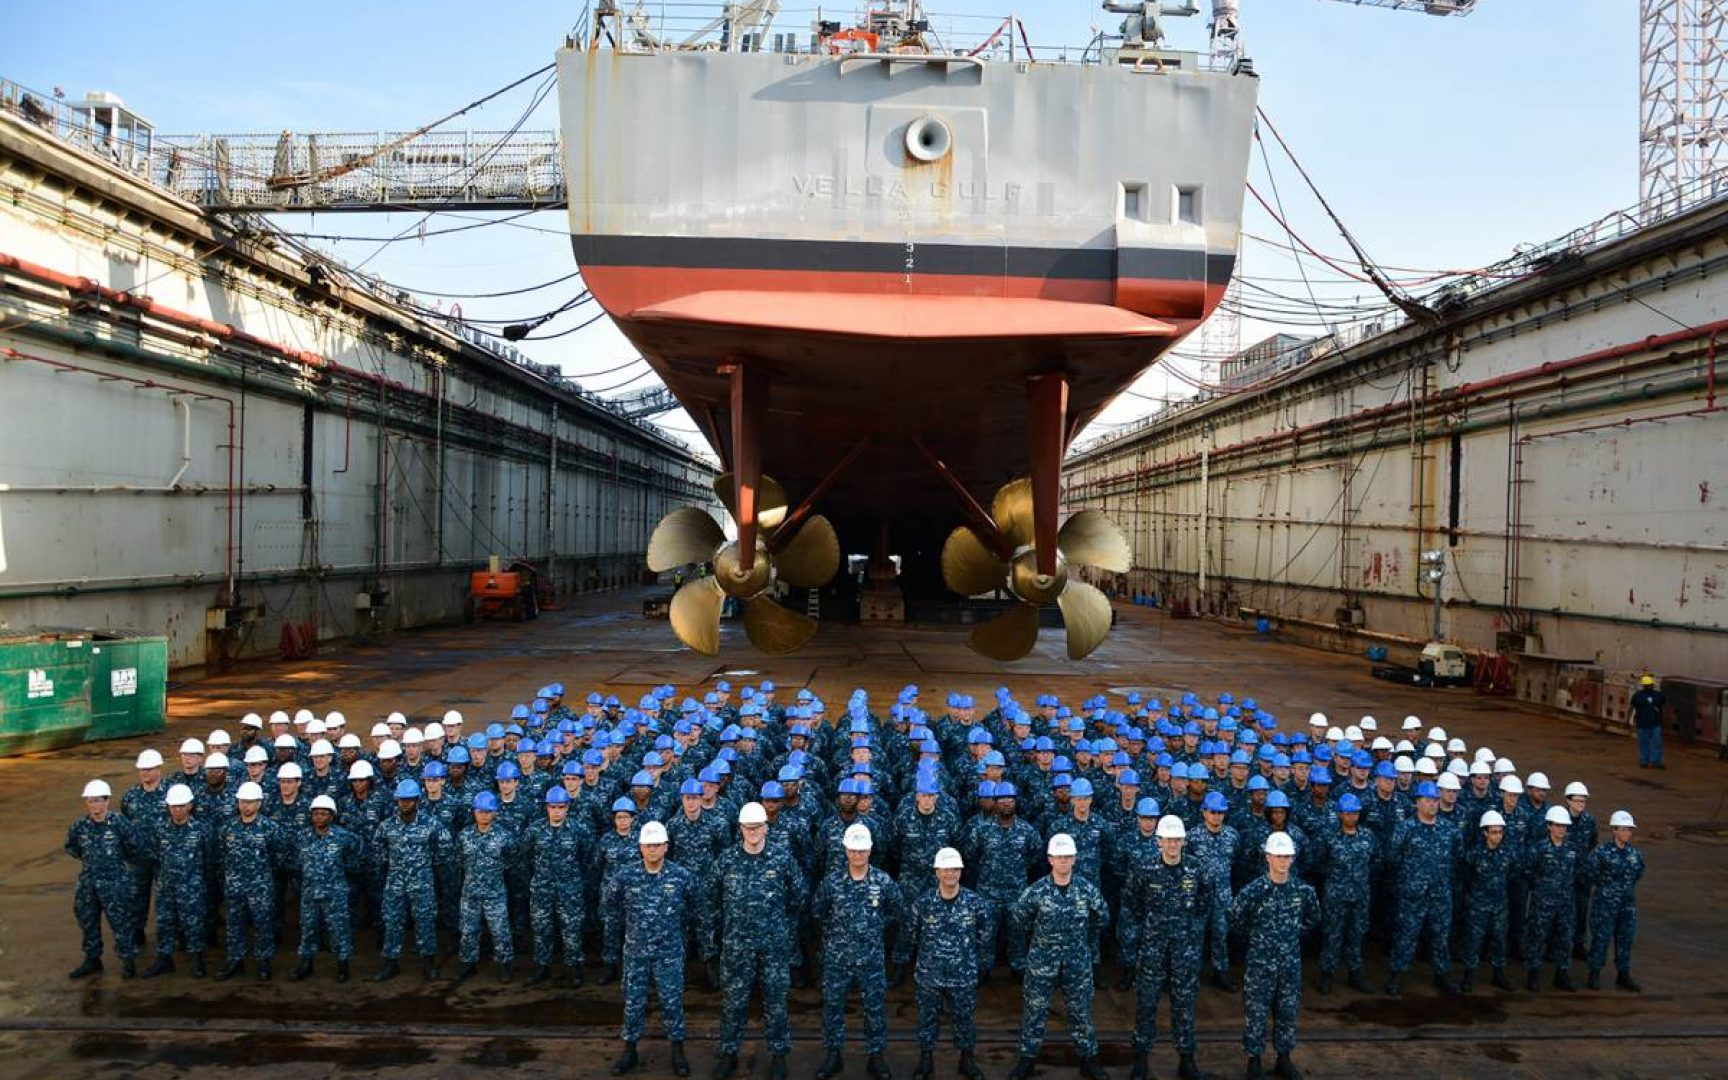 Large group of uniformed soldiers stand in formation in front of a large ship